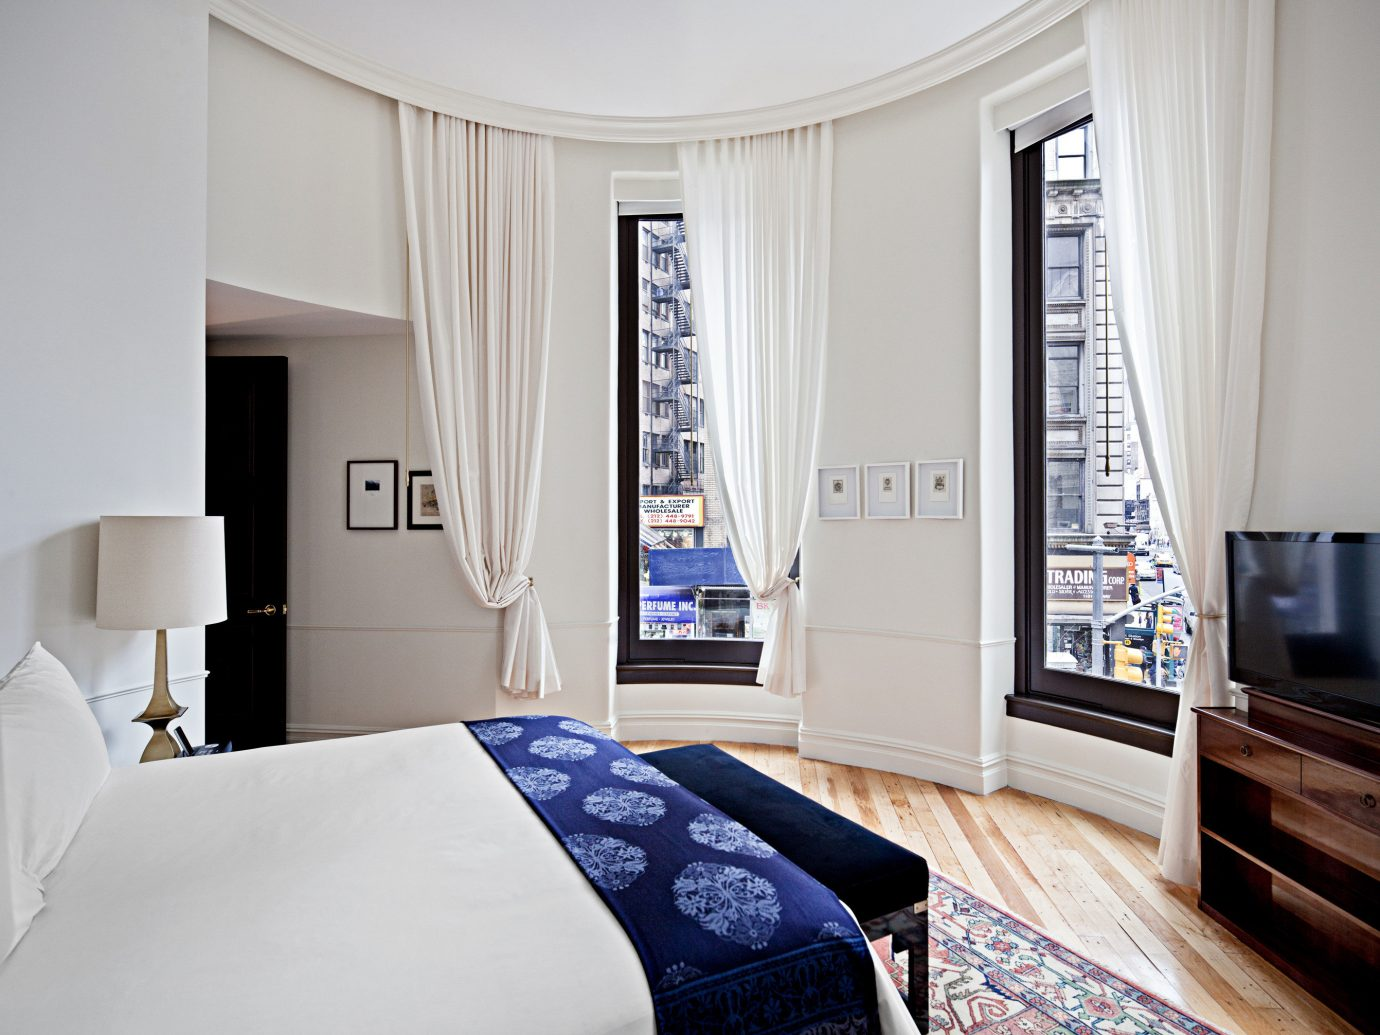 Bedroom City Hip Hotels Luxury Luxury Travel NYC Offbeat Romantic Hotels Trip Ideas indoor wall bed room floor property window home interior design hotel living room cottage Suite estate real estate furniture textile decorated